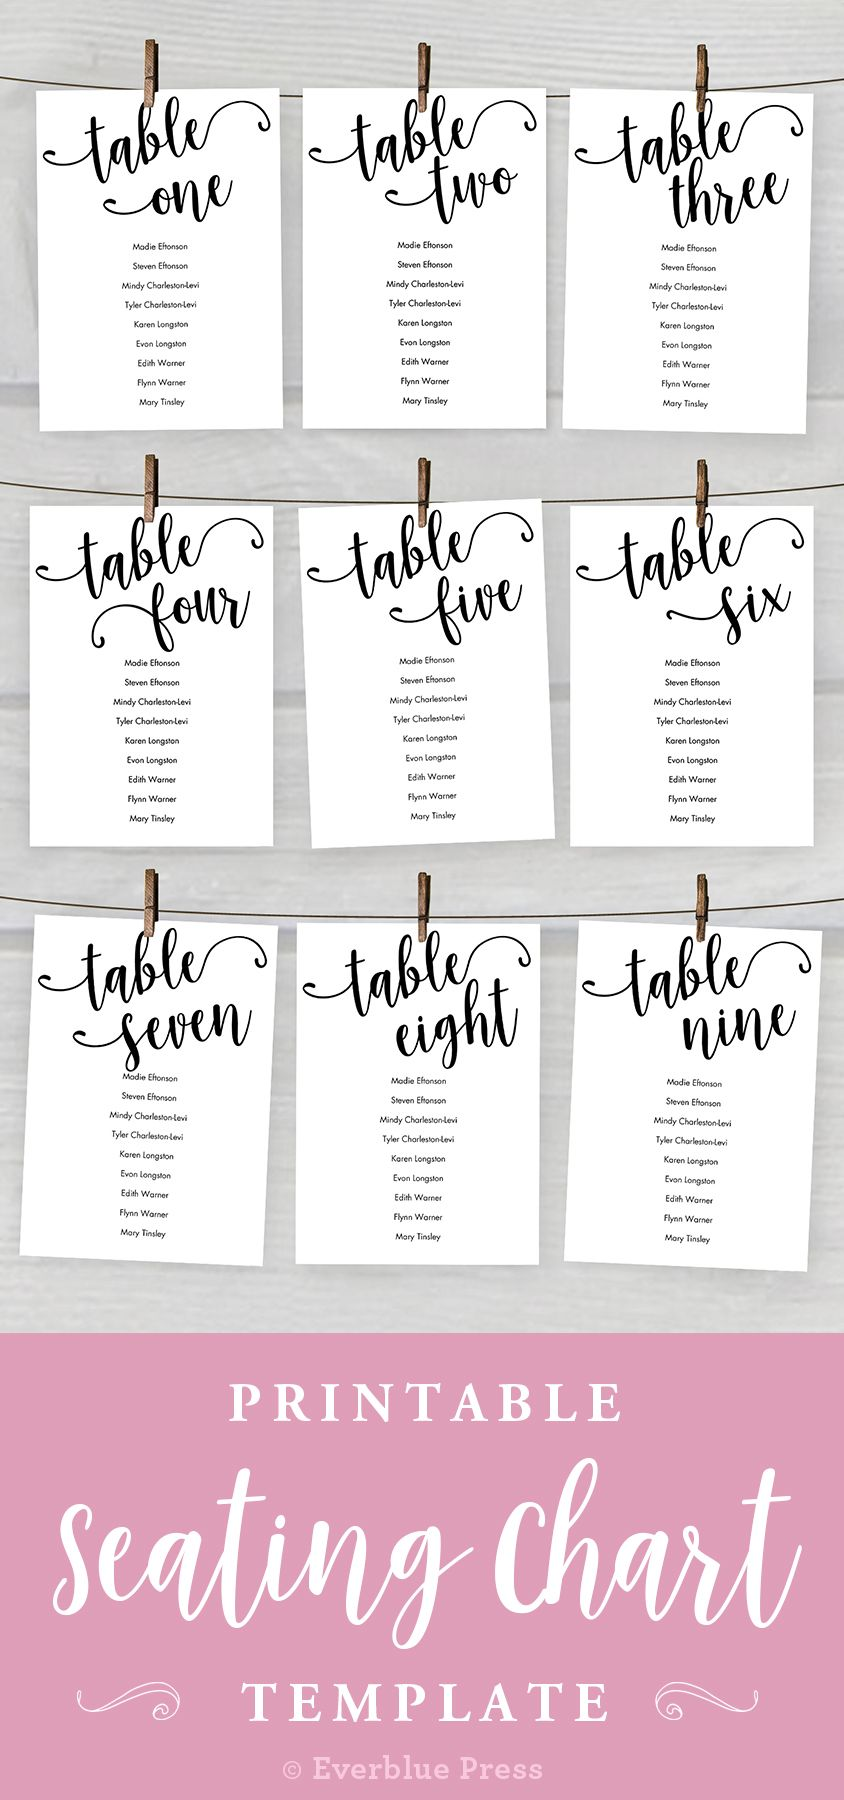 Our Printable Seating Chart Template Allows You To Add Your Guest Names Print Trim